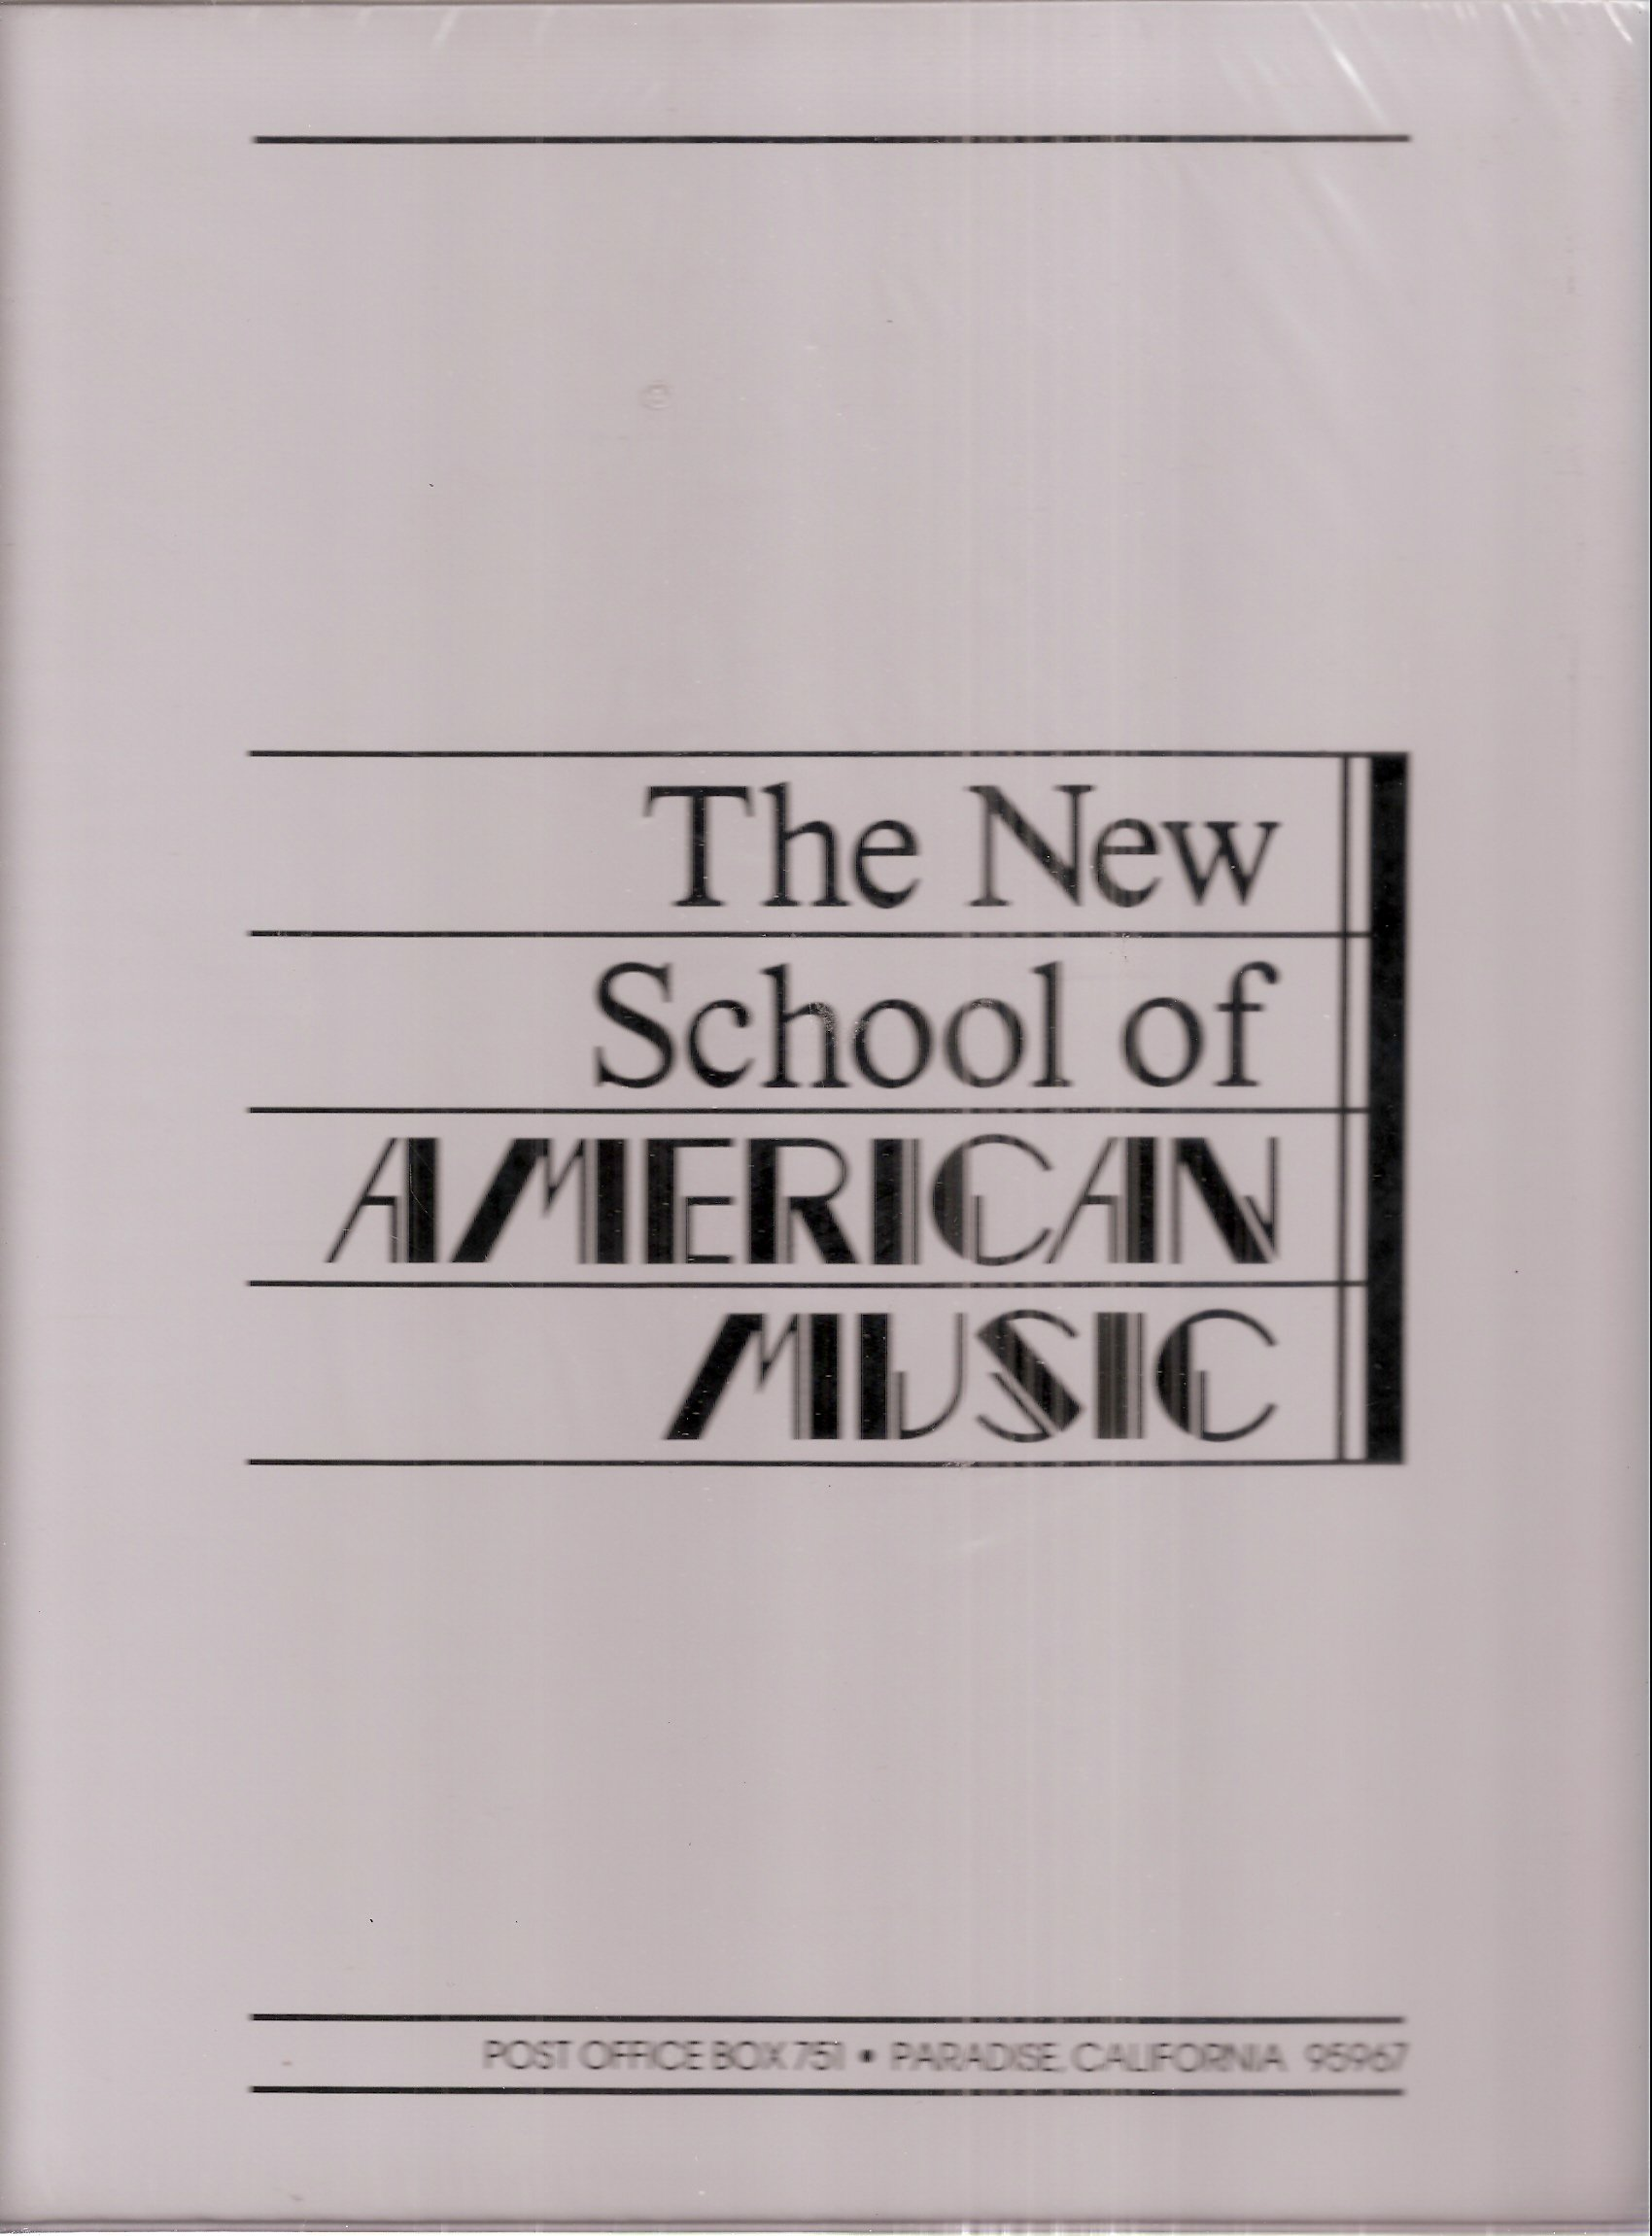 Of American Music: Robert Laughlin's How To Play Music By Ear  Plete Audio Cassette Program In Clamshell Case: Robert Laughlin:  Amazon: Books